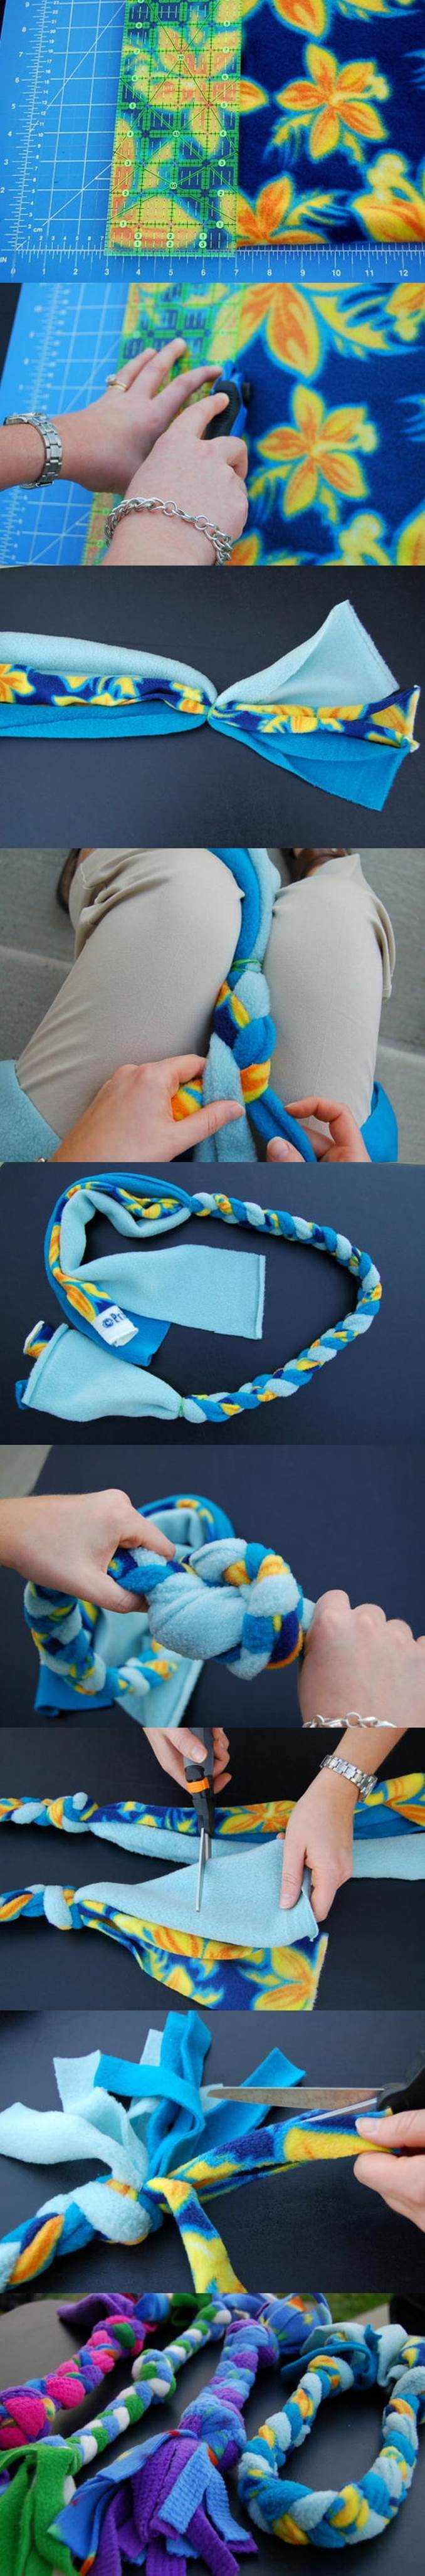 DIY Fleece Rope Dog Toy 2